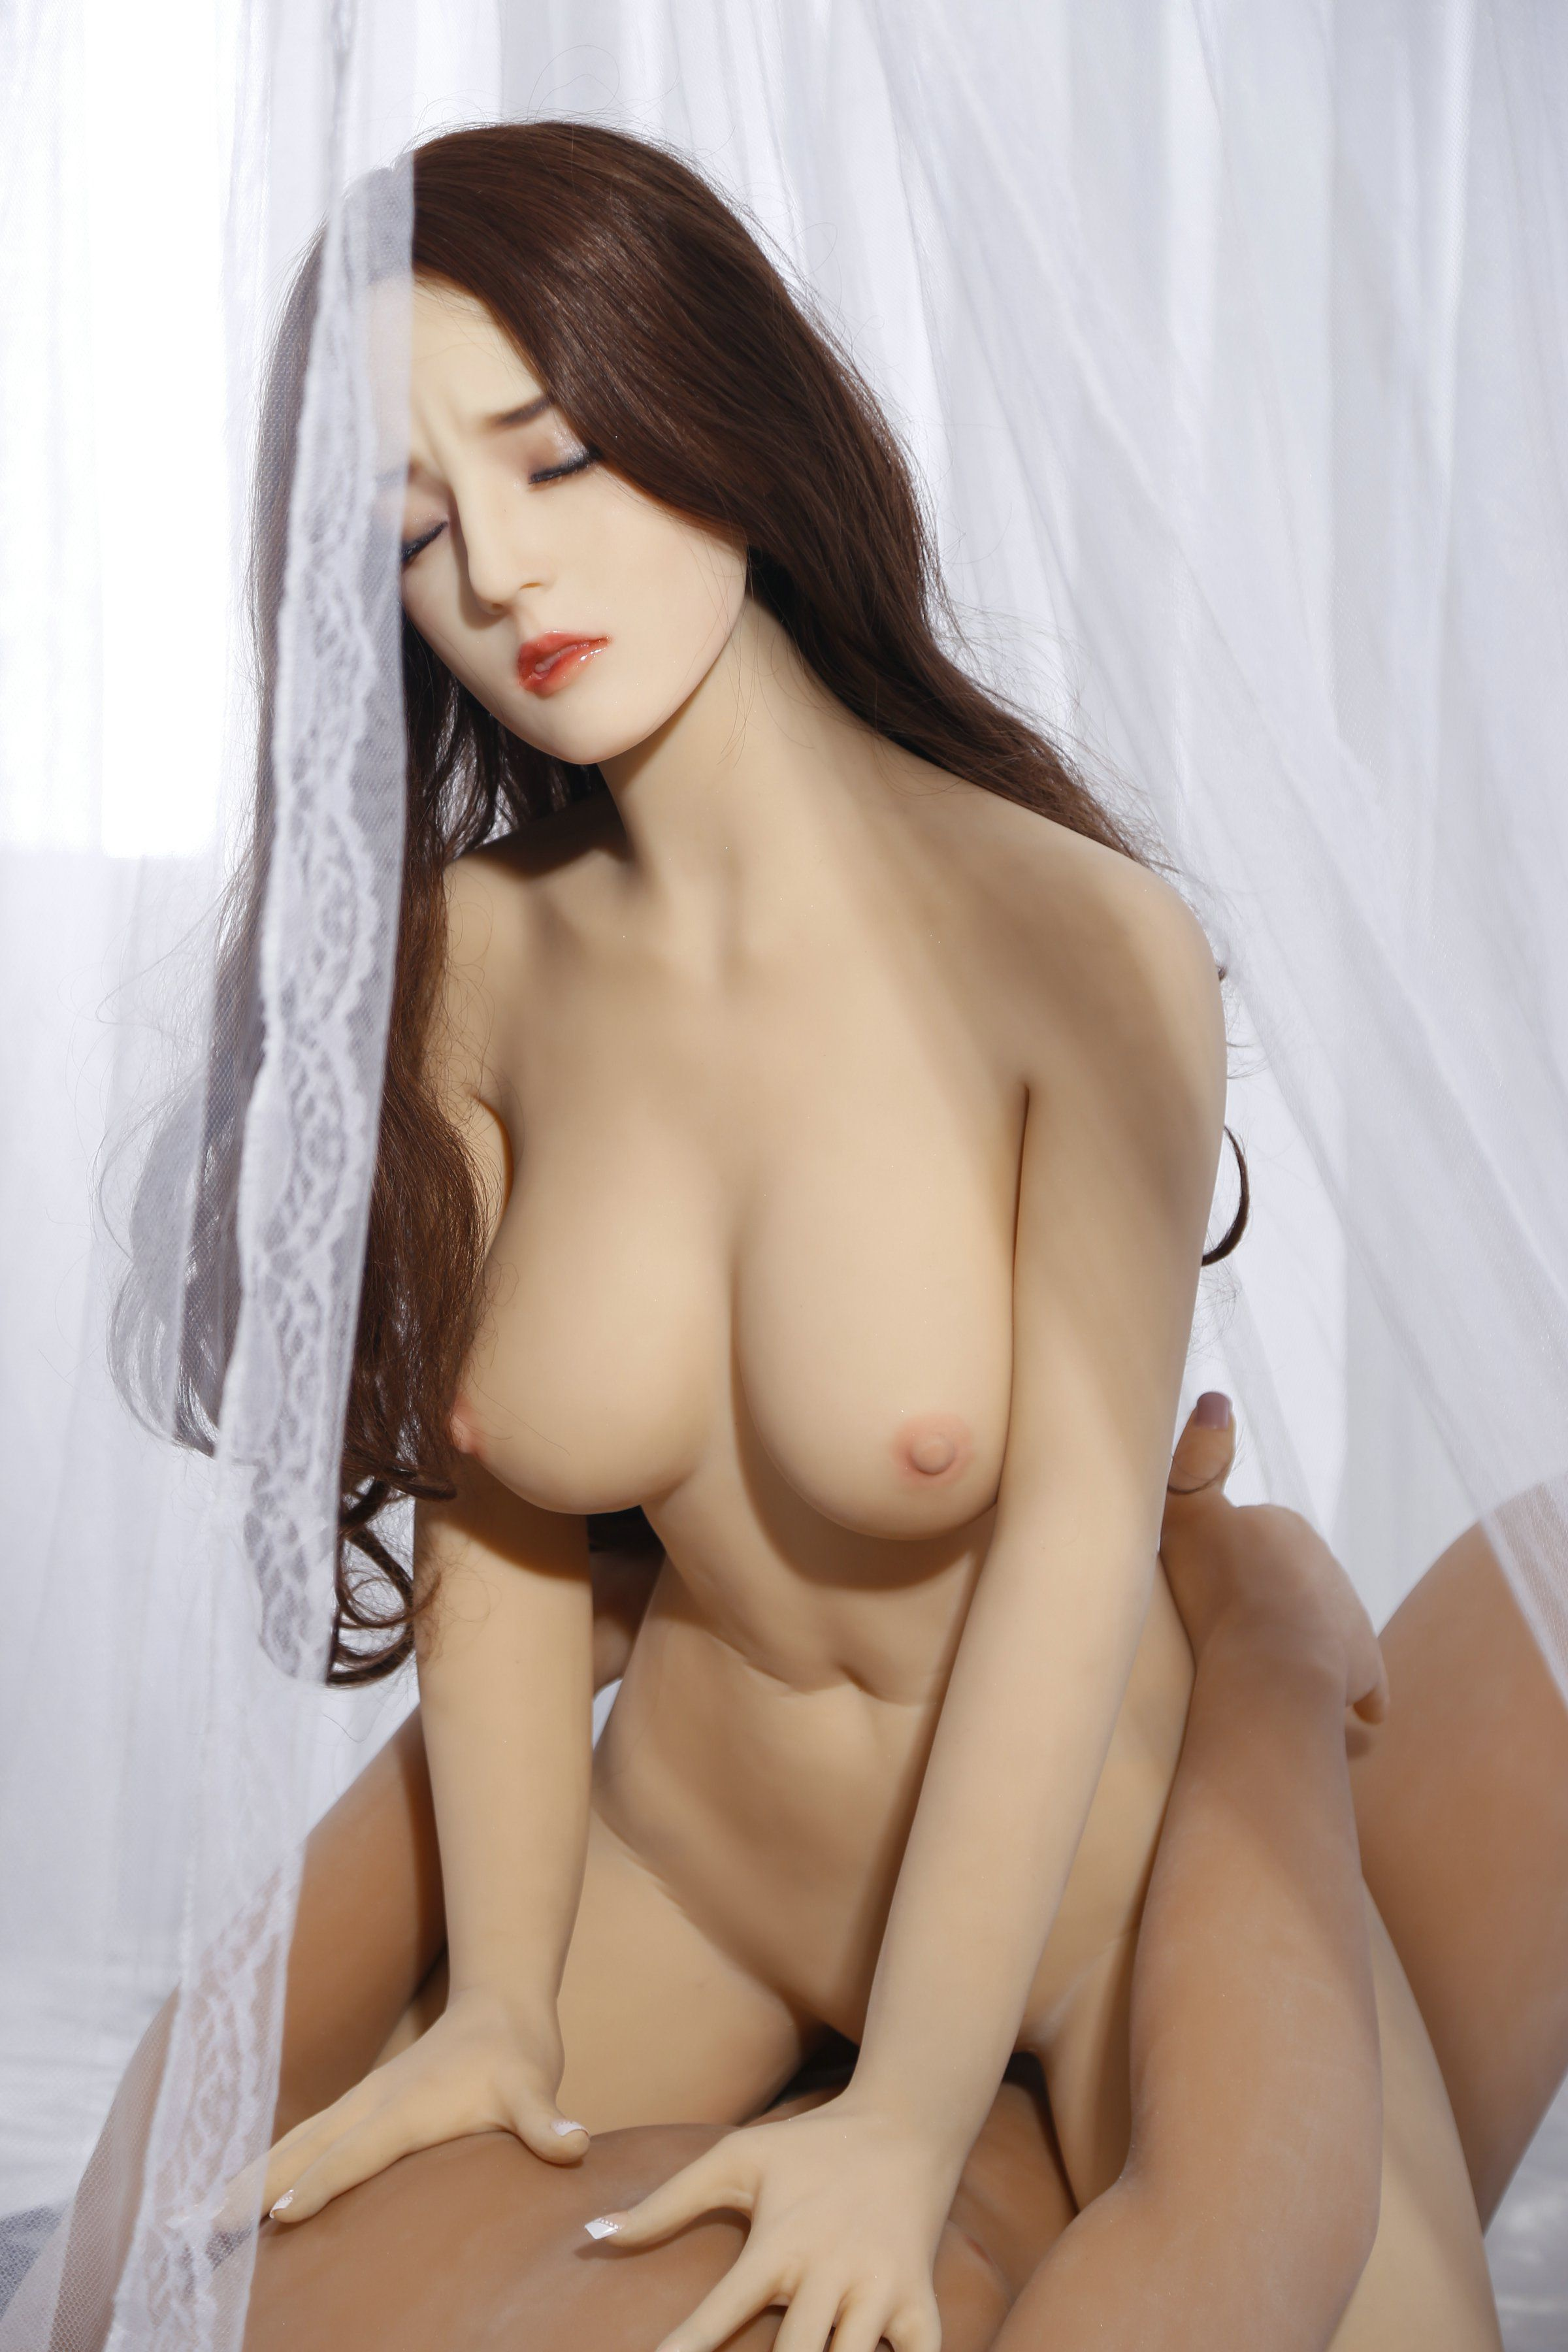 sex doll in Japan